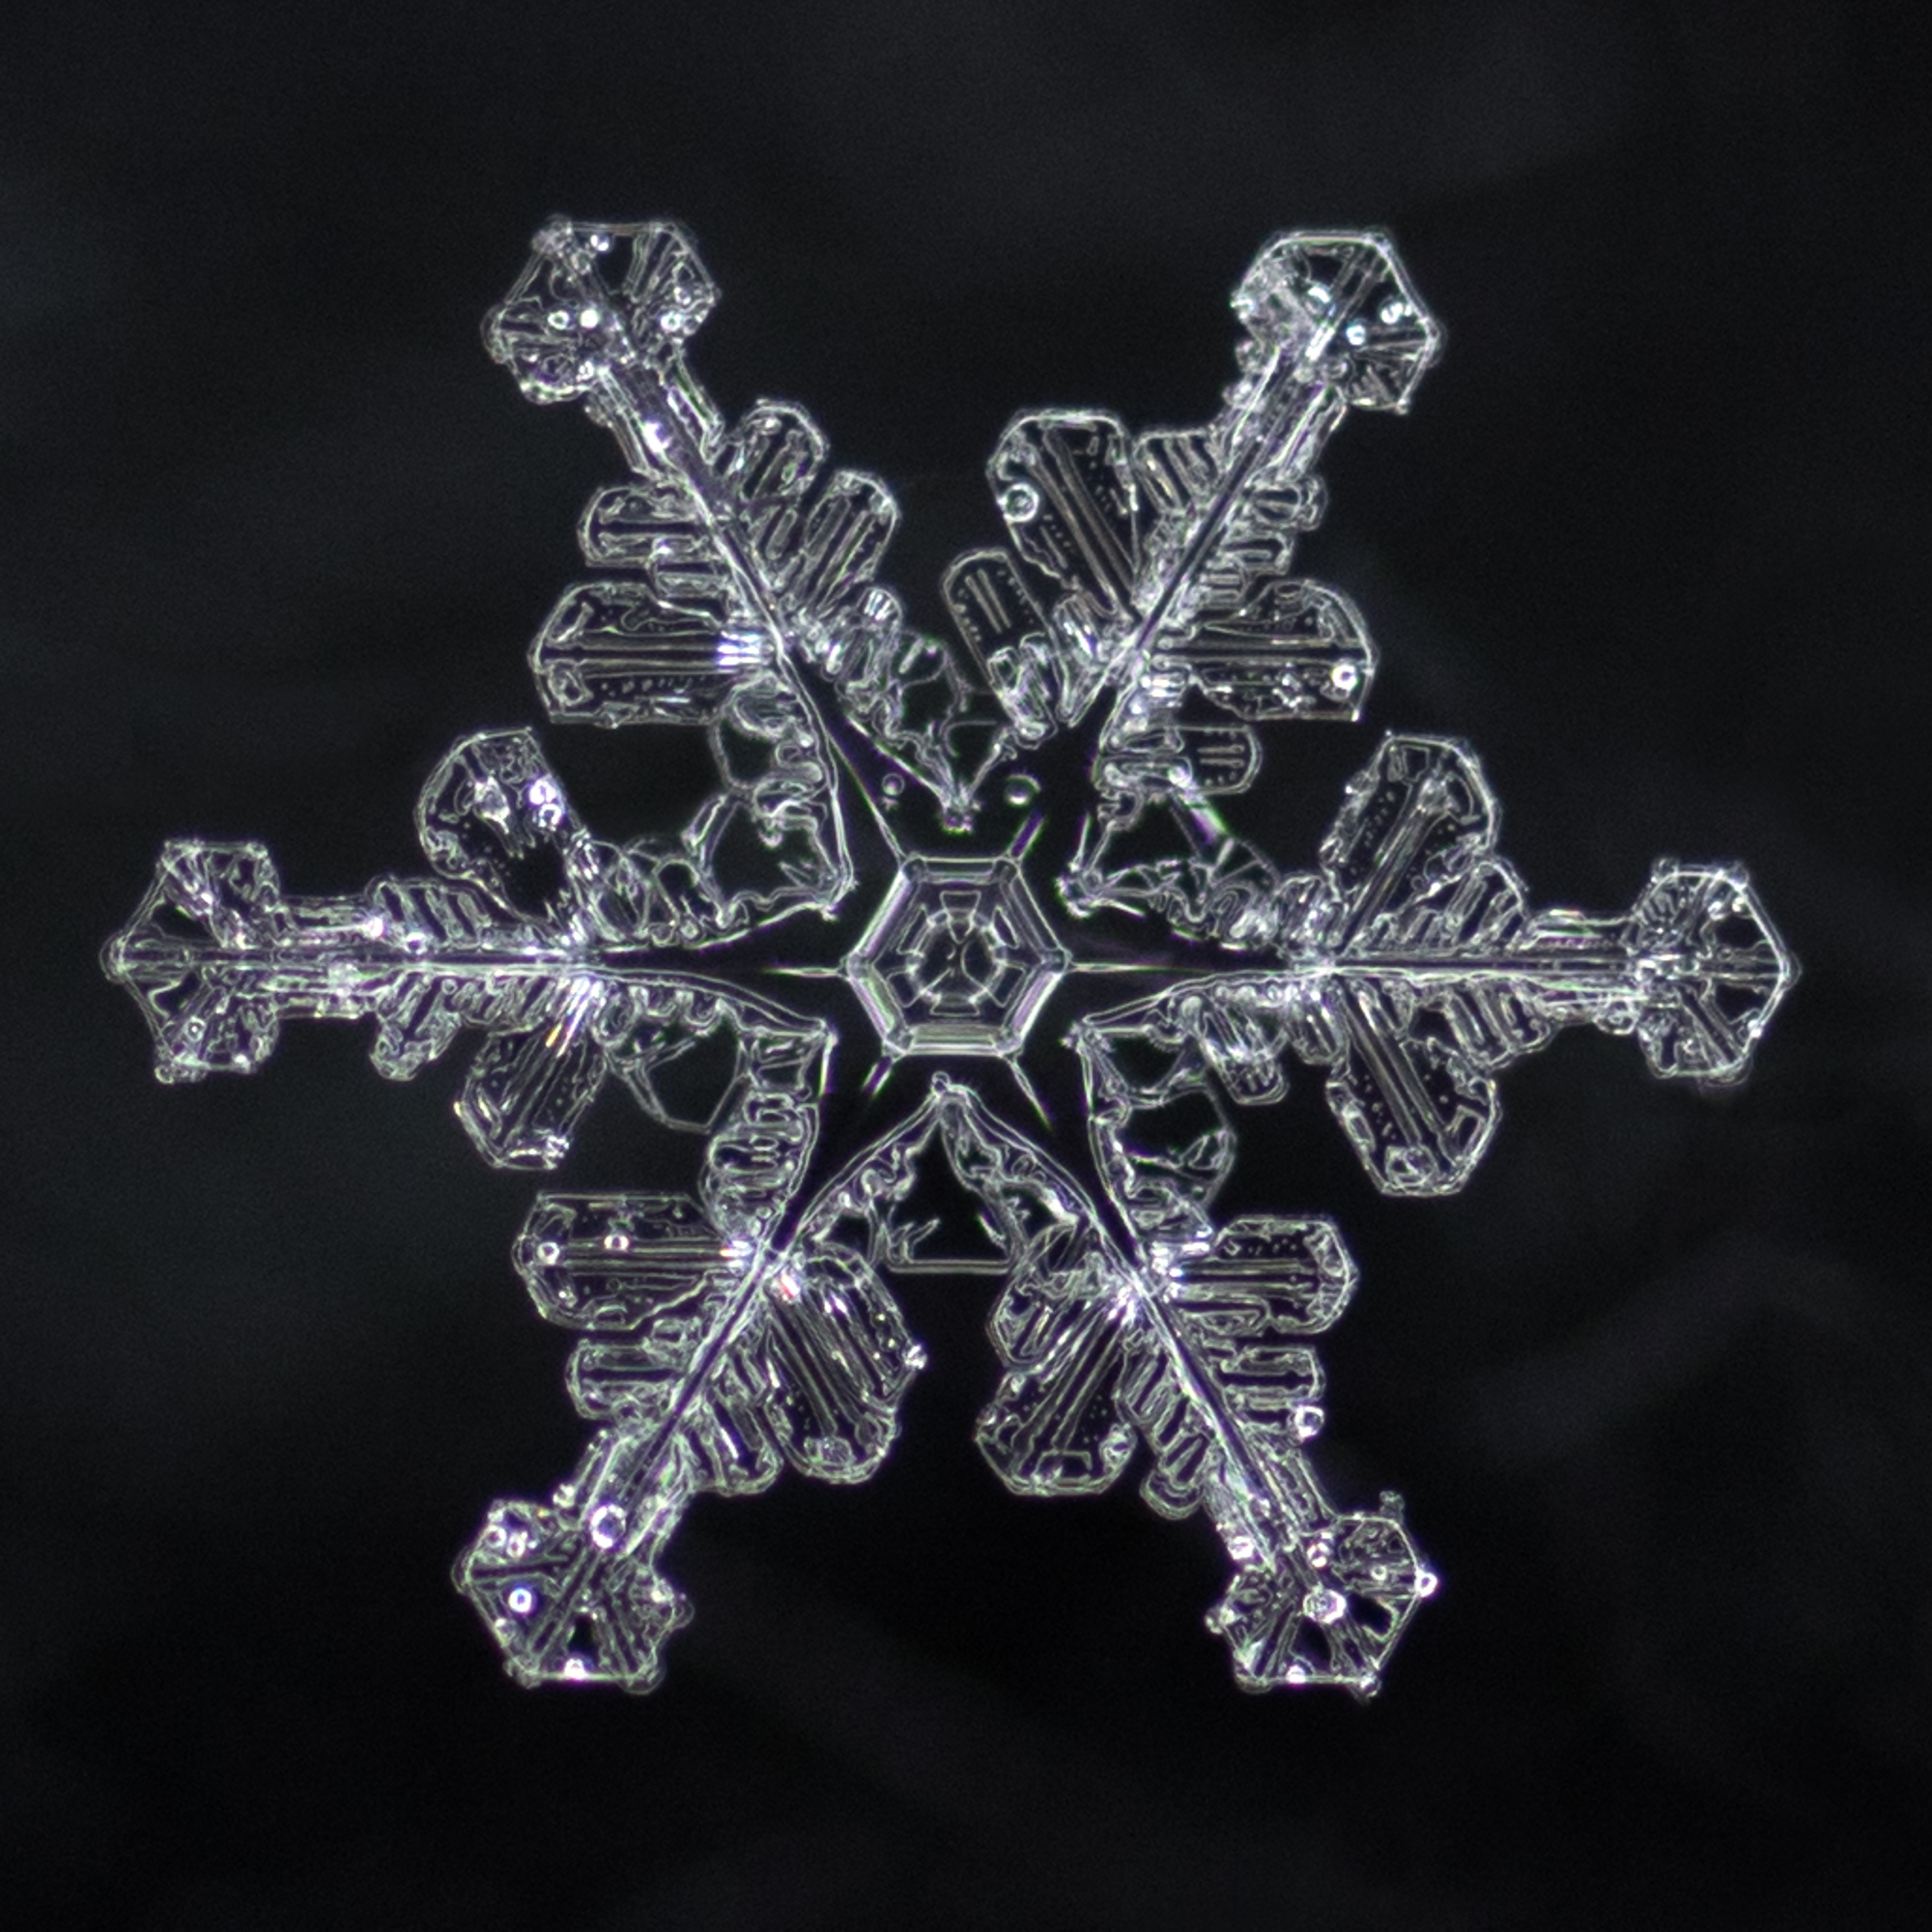 snowflake photography sample-6.jpg